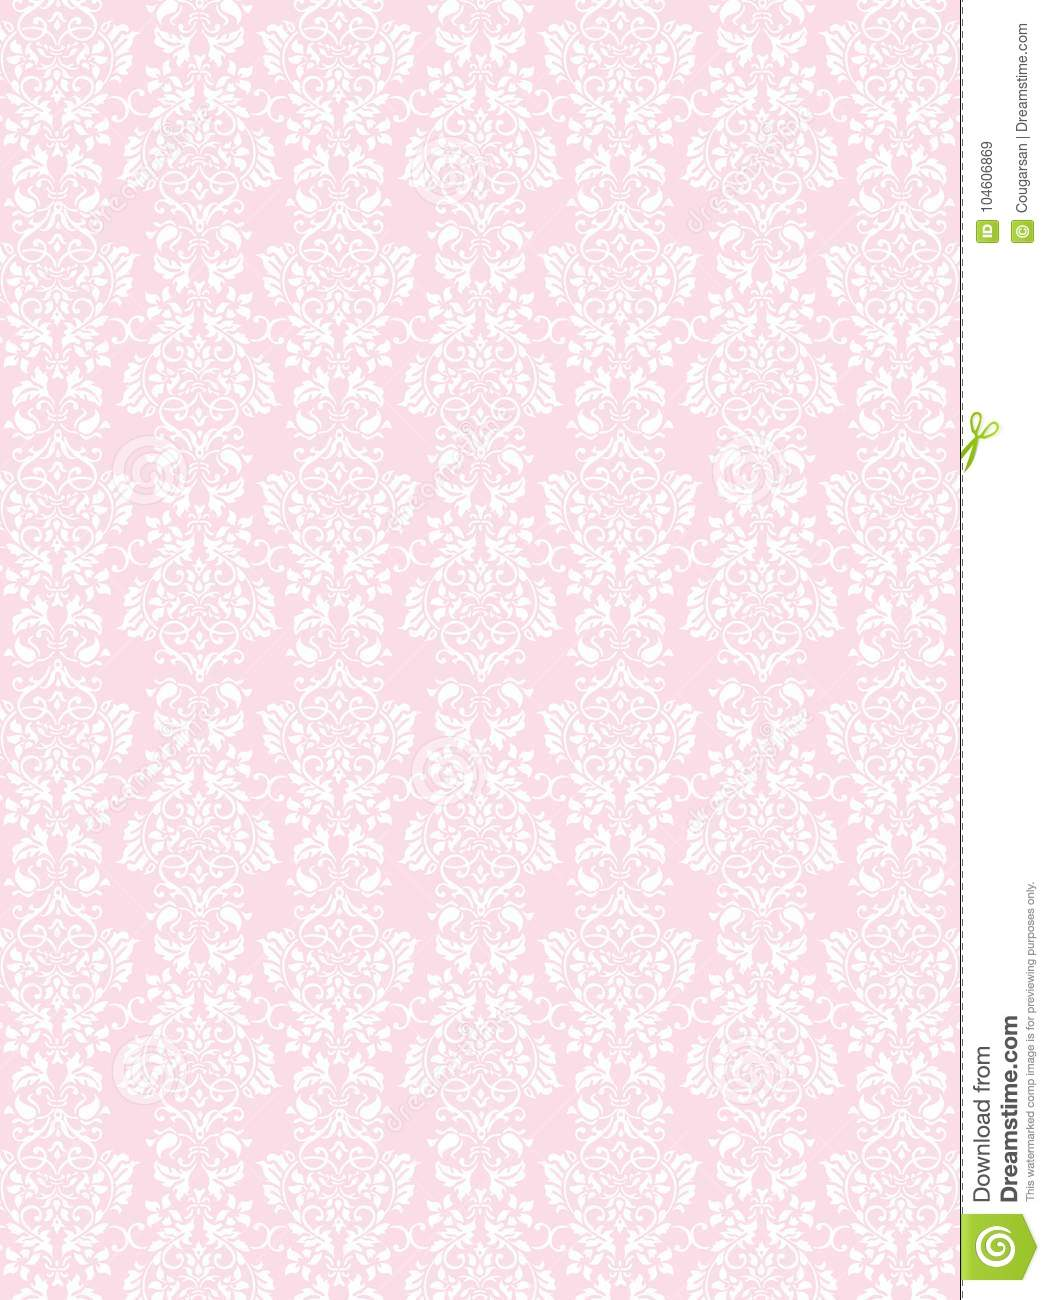 Elegant White Flowers Pattern Textured Pink Wallpaper Background